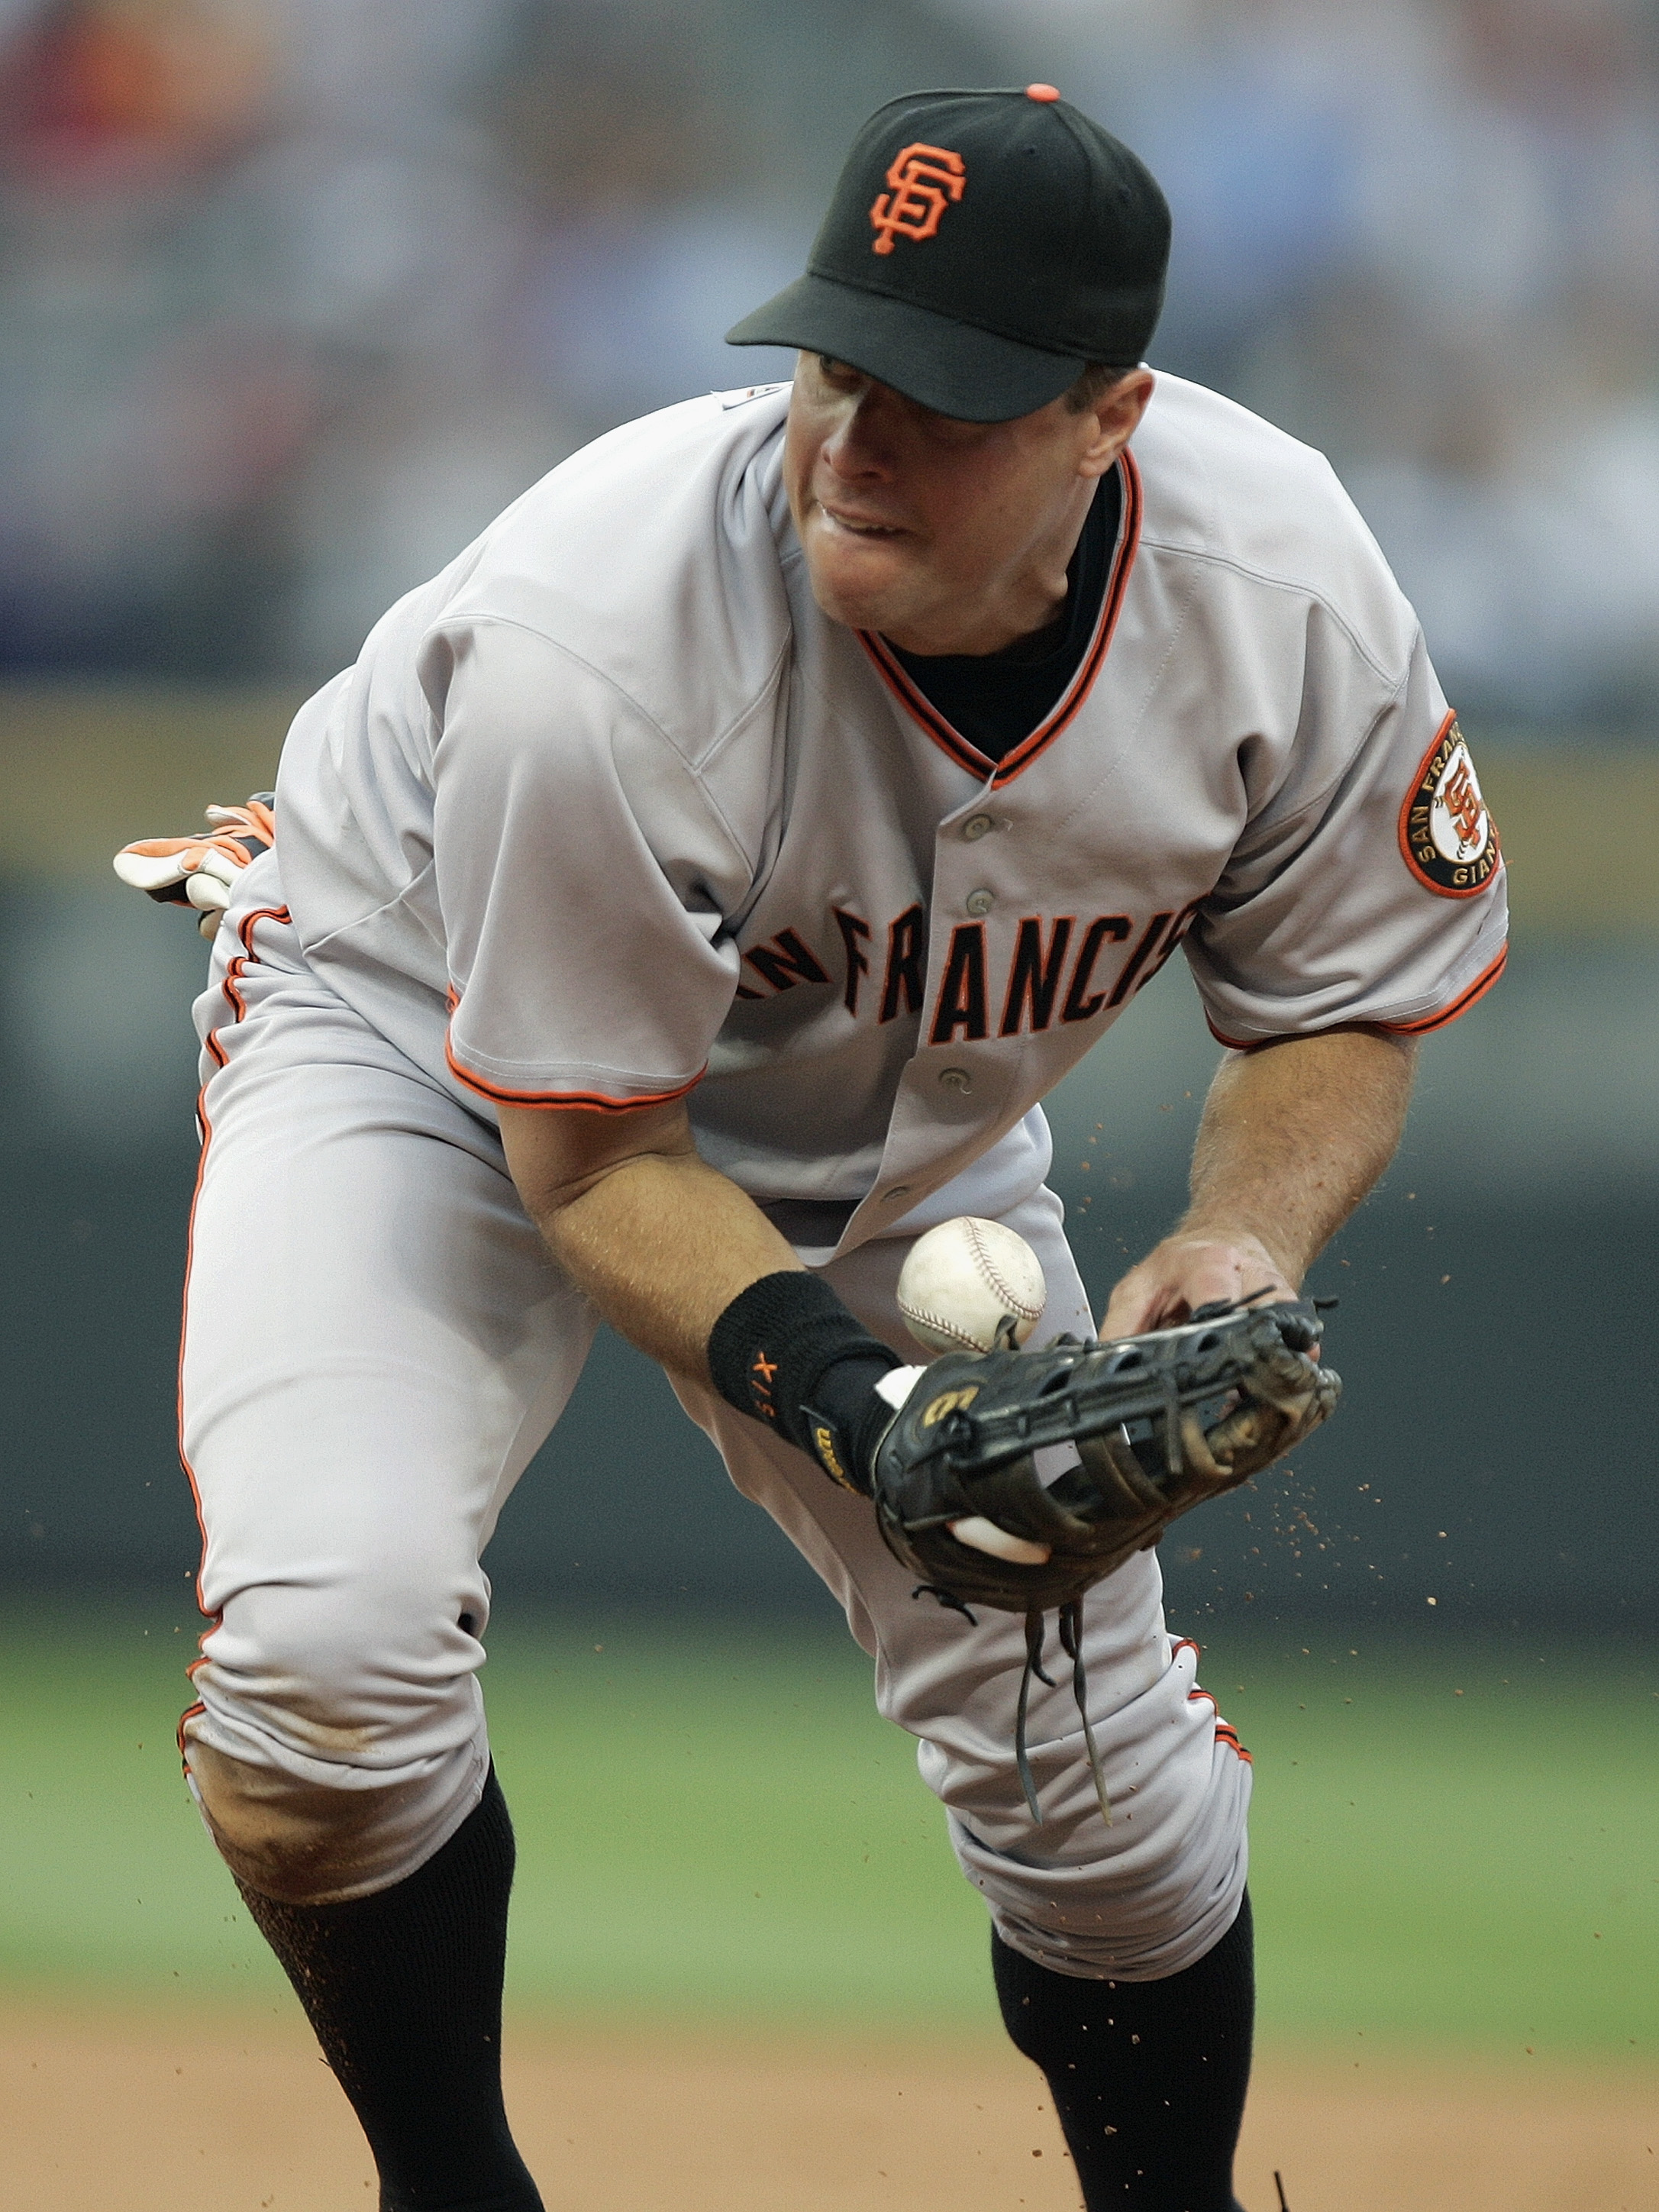 DENVER - JULY 17:  First baseman J.T. Snow #6 of the San Francisco Giants fields the ball during the game against the Colorado Rockies at Coors Field on July 17, 2004 in Denver, Colorado.  The Giants won 4-0. (Photo by Brian Bahr/Getty Images)